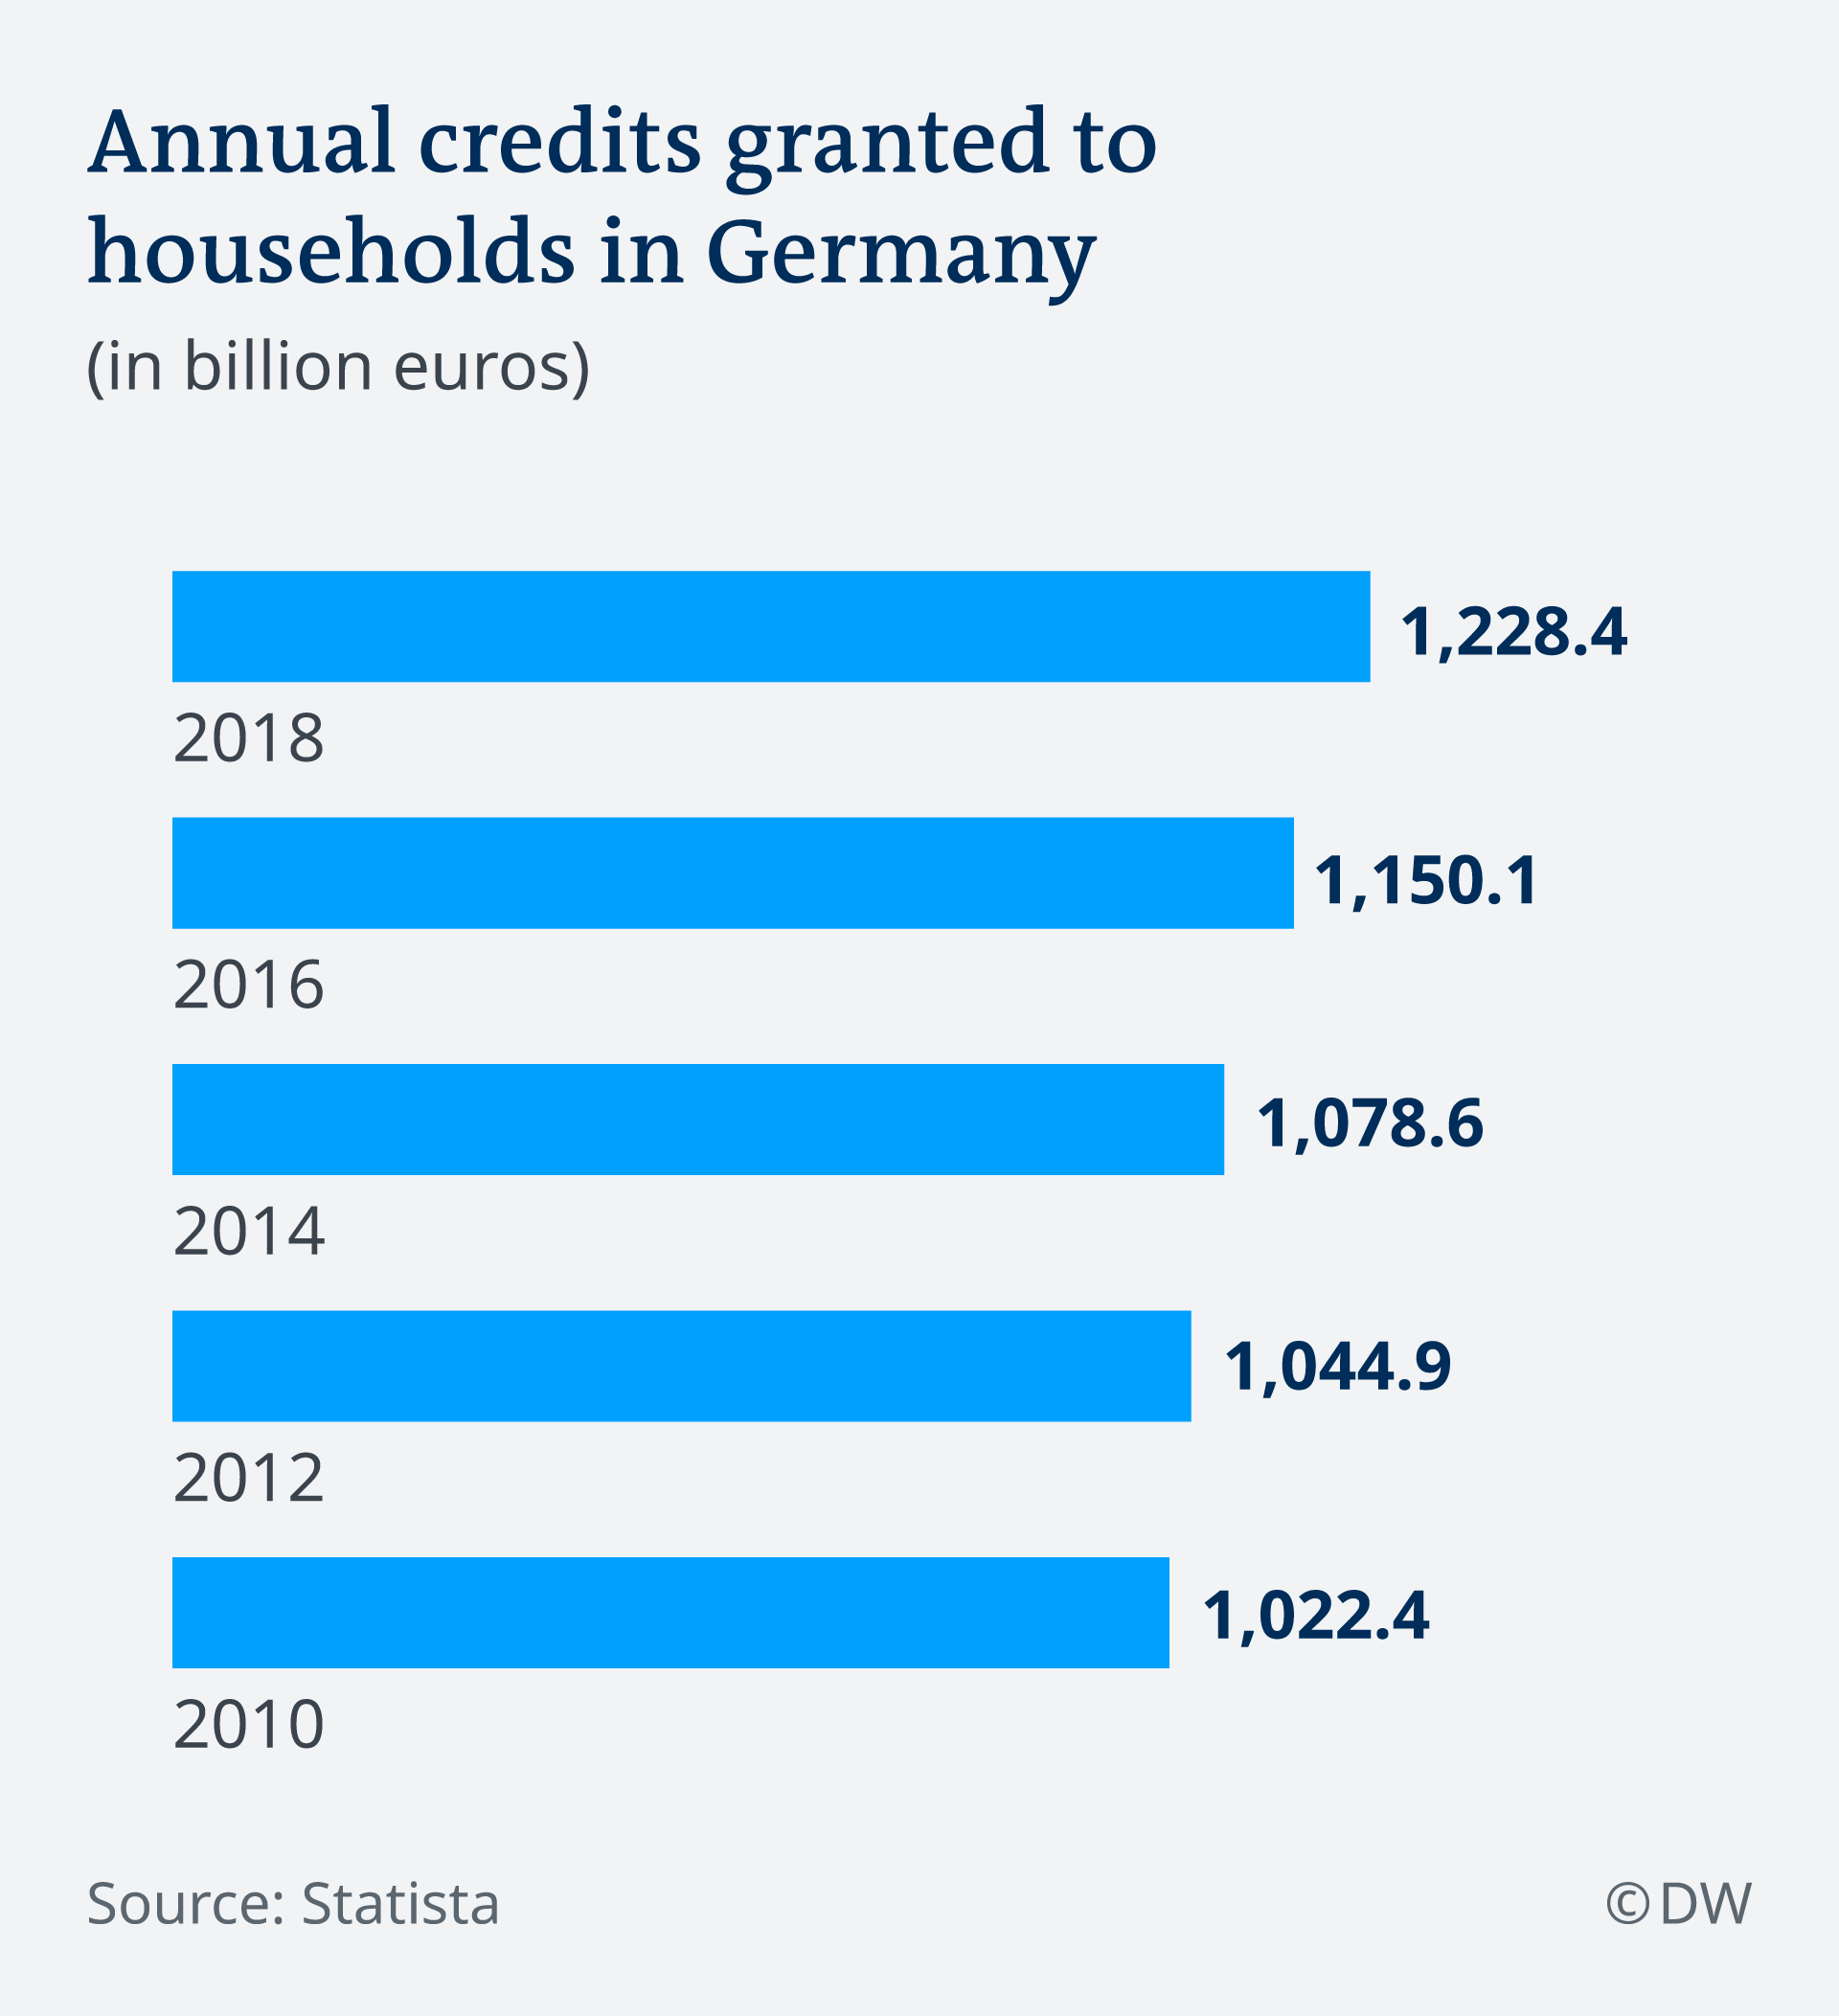 Credits granted to households in Germany